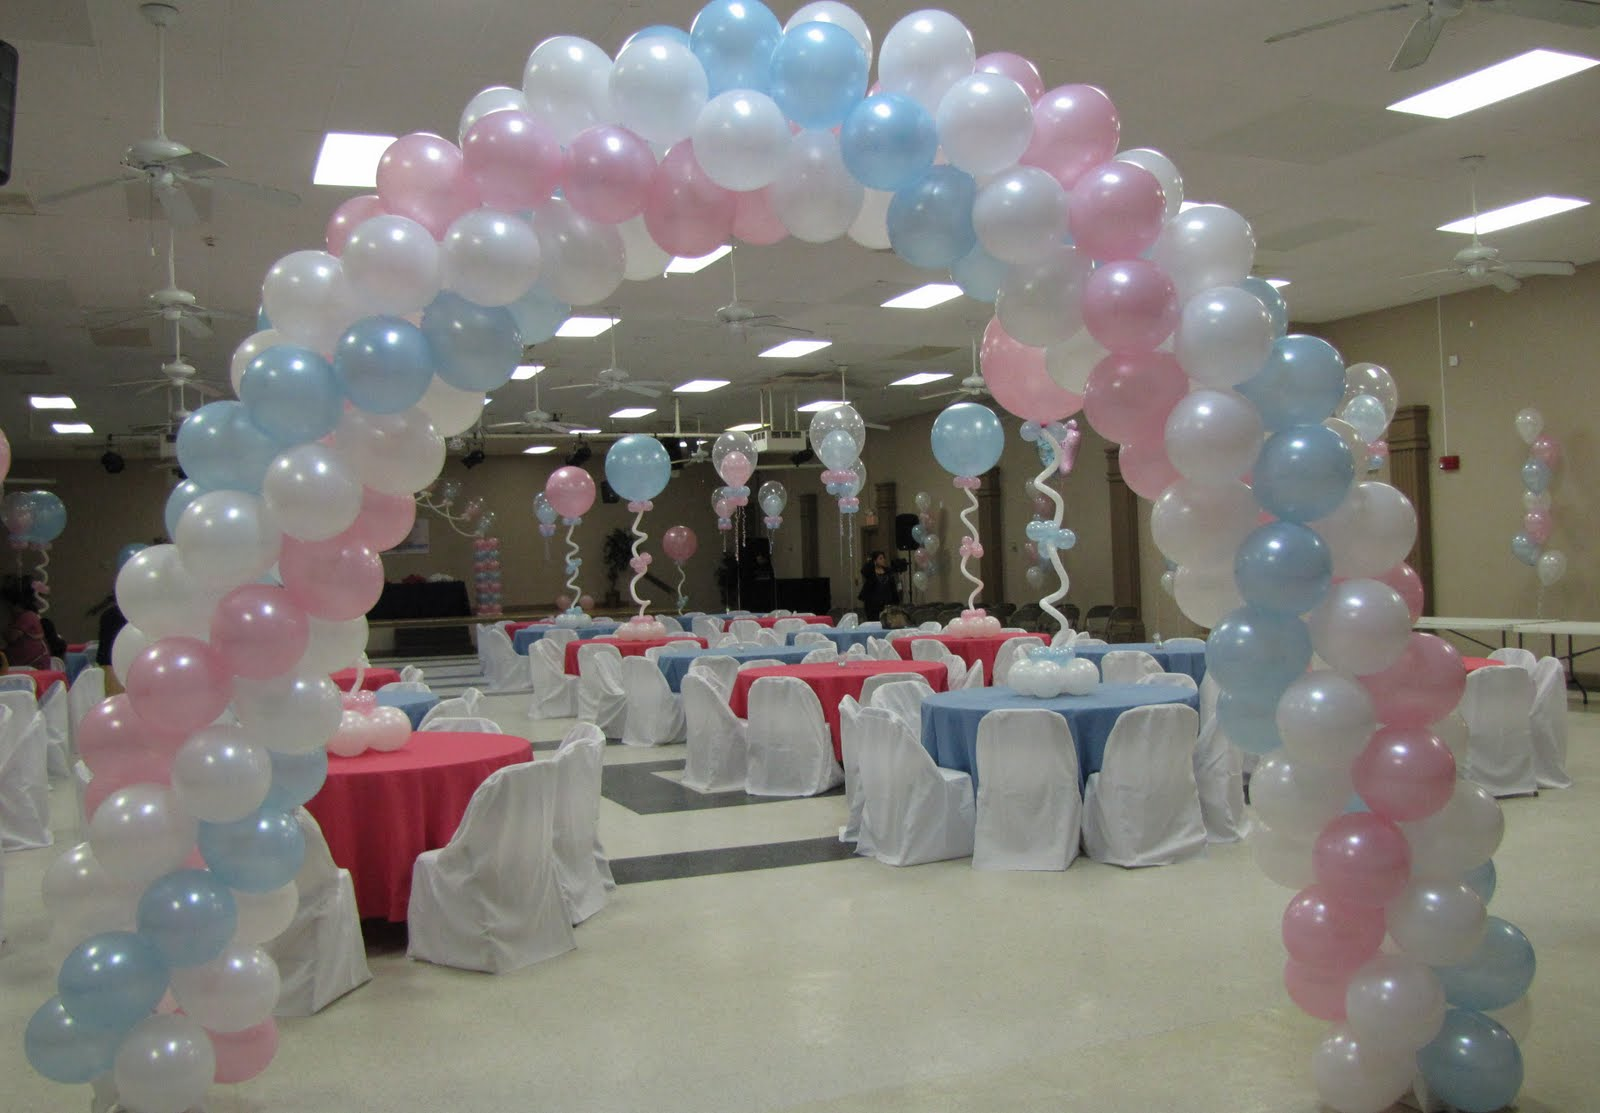 Balloons decorations for baby shower party favors ideas for Baby shower decoration images